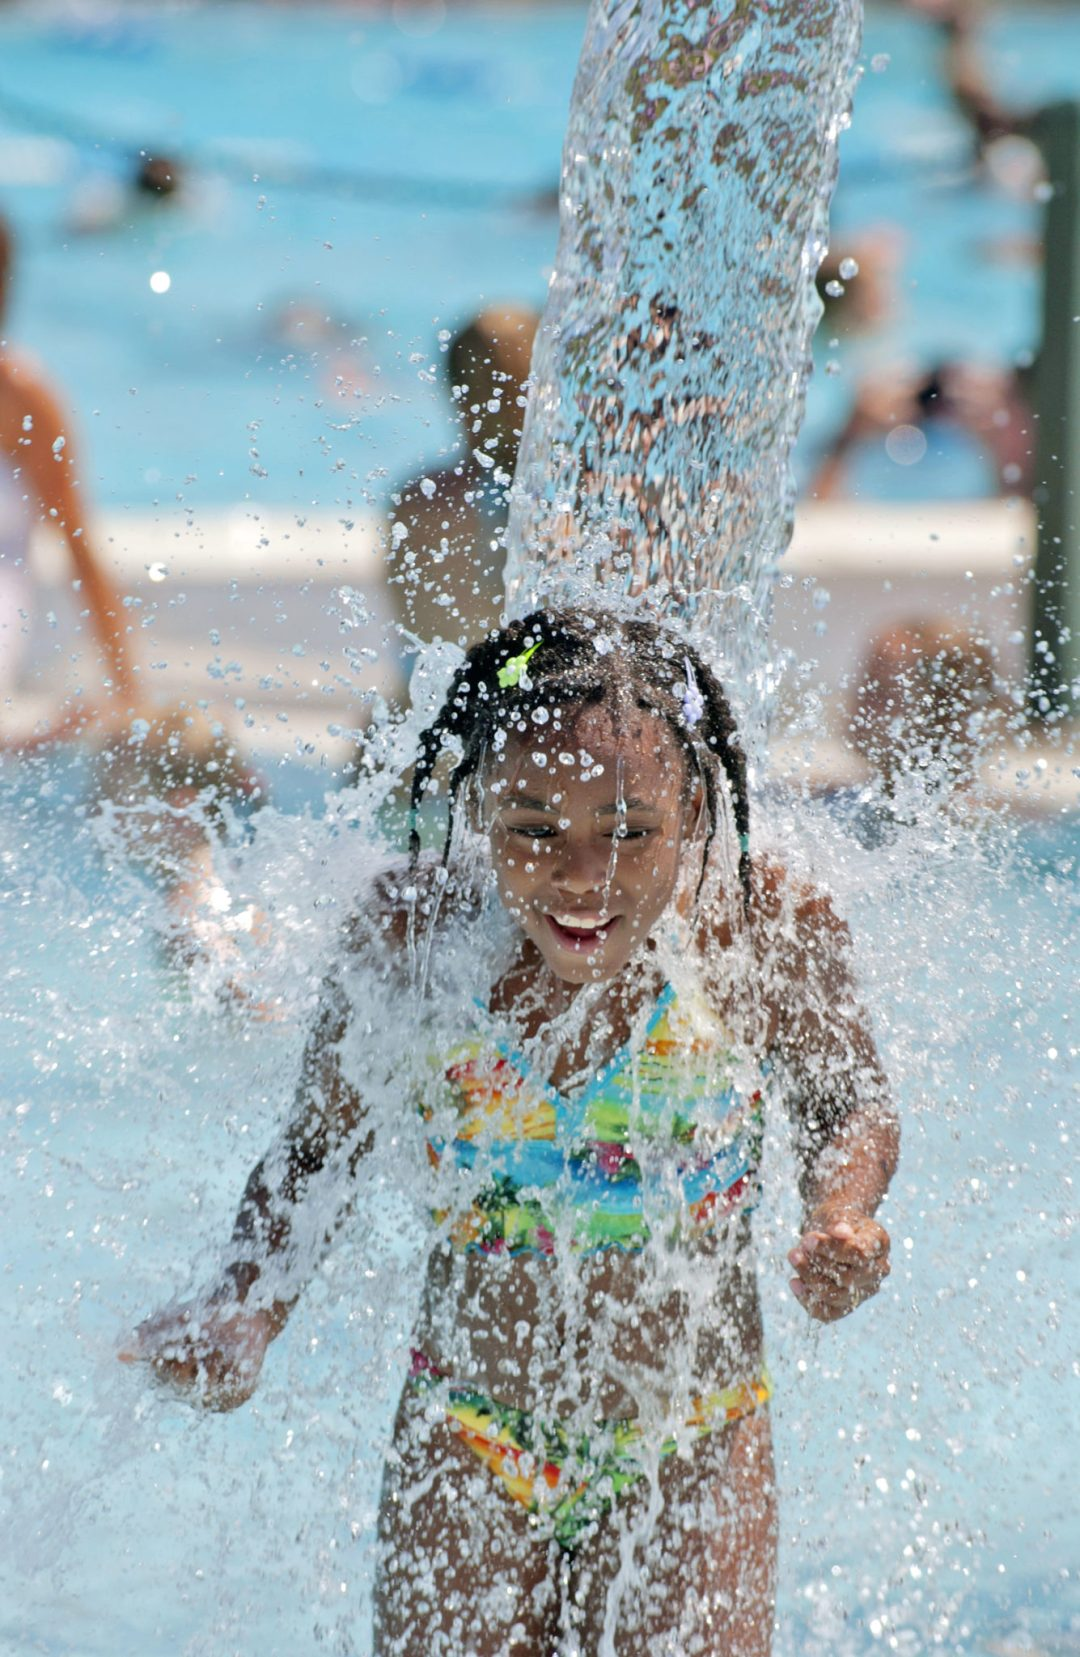 "Getting Drenched. Image by <a href=""http://www.cityofeagan.com/cascade-bay"" target=""_blank"">Cascade Bay Waterpark</a>"